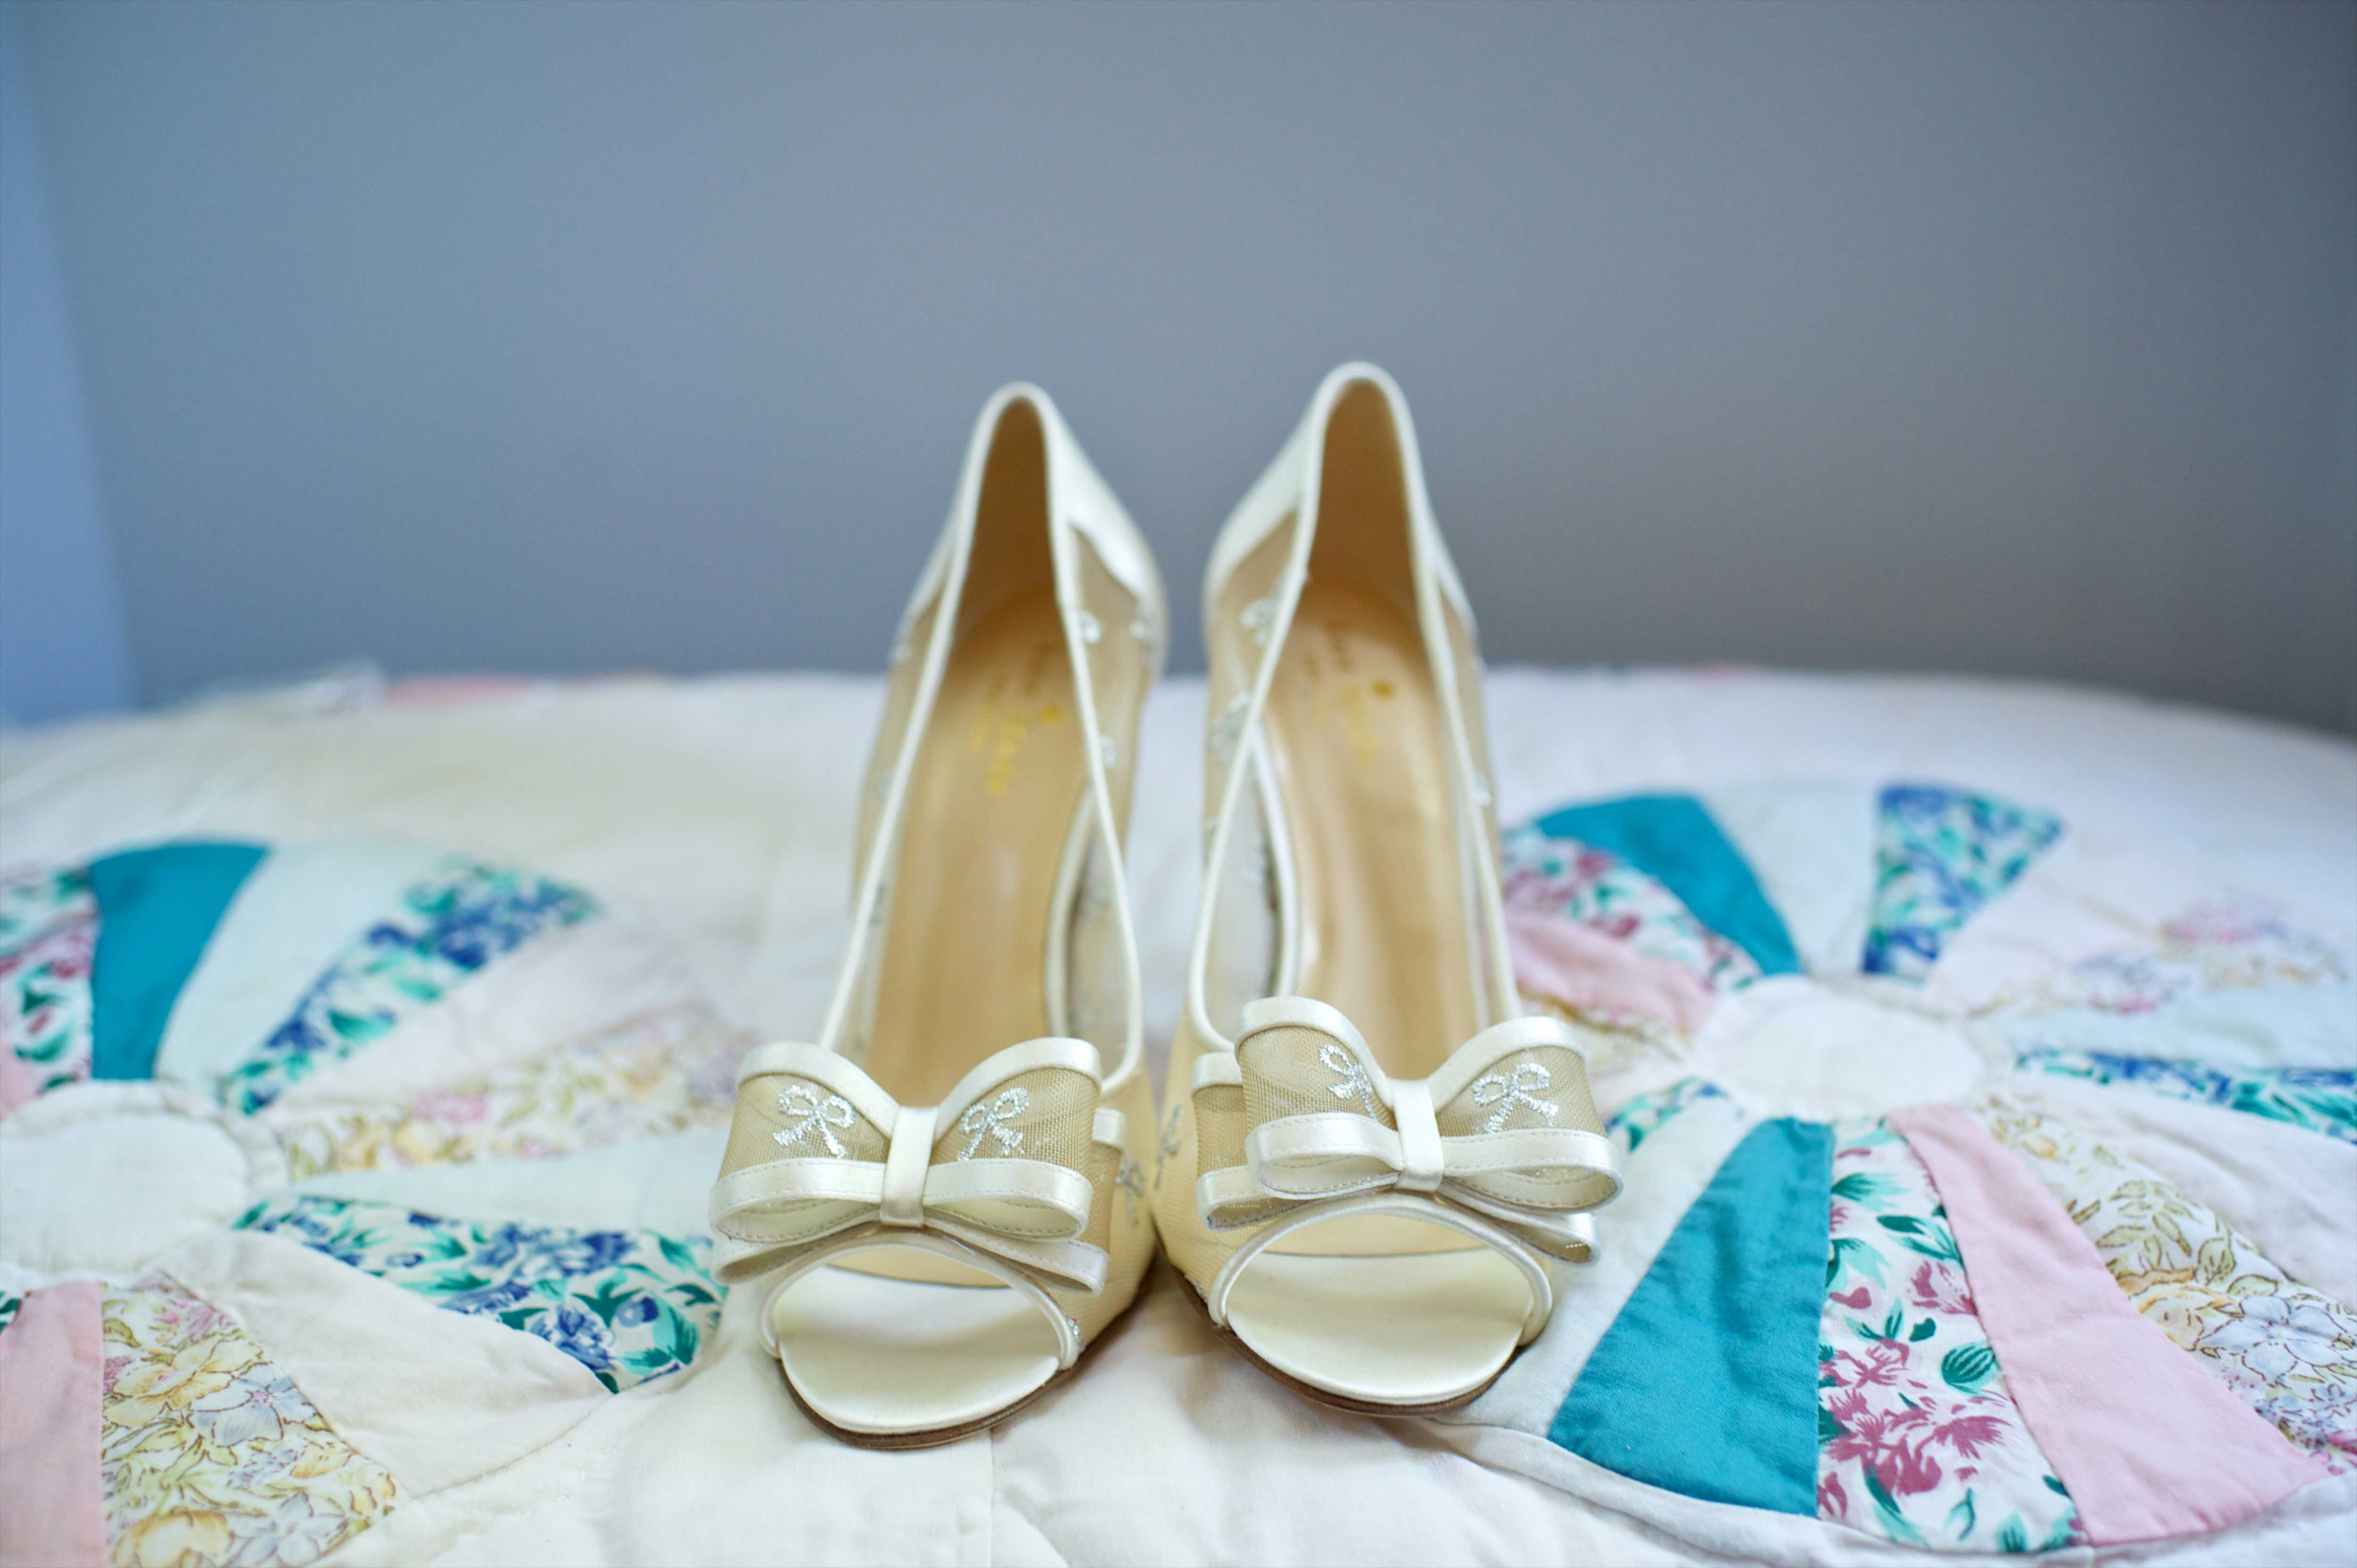 wedding bow details, kate spade peep toe bridal pumps with bows